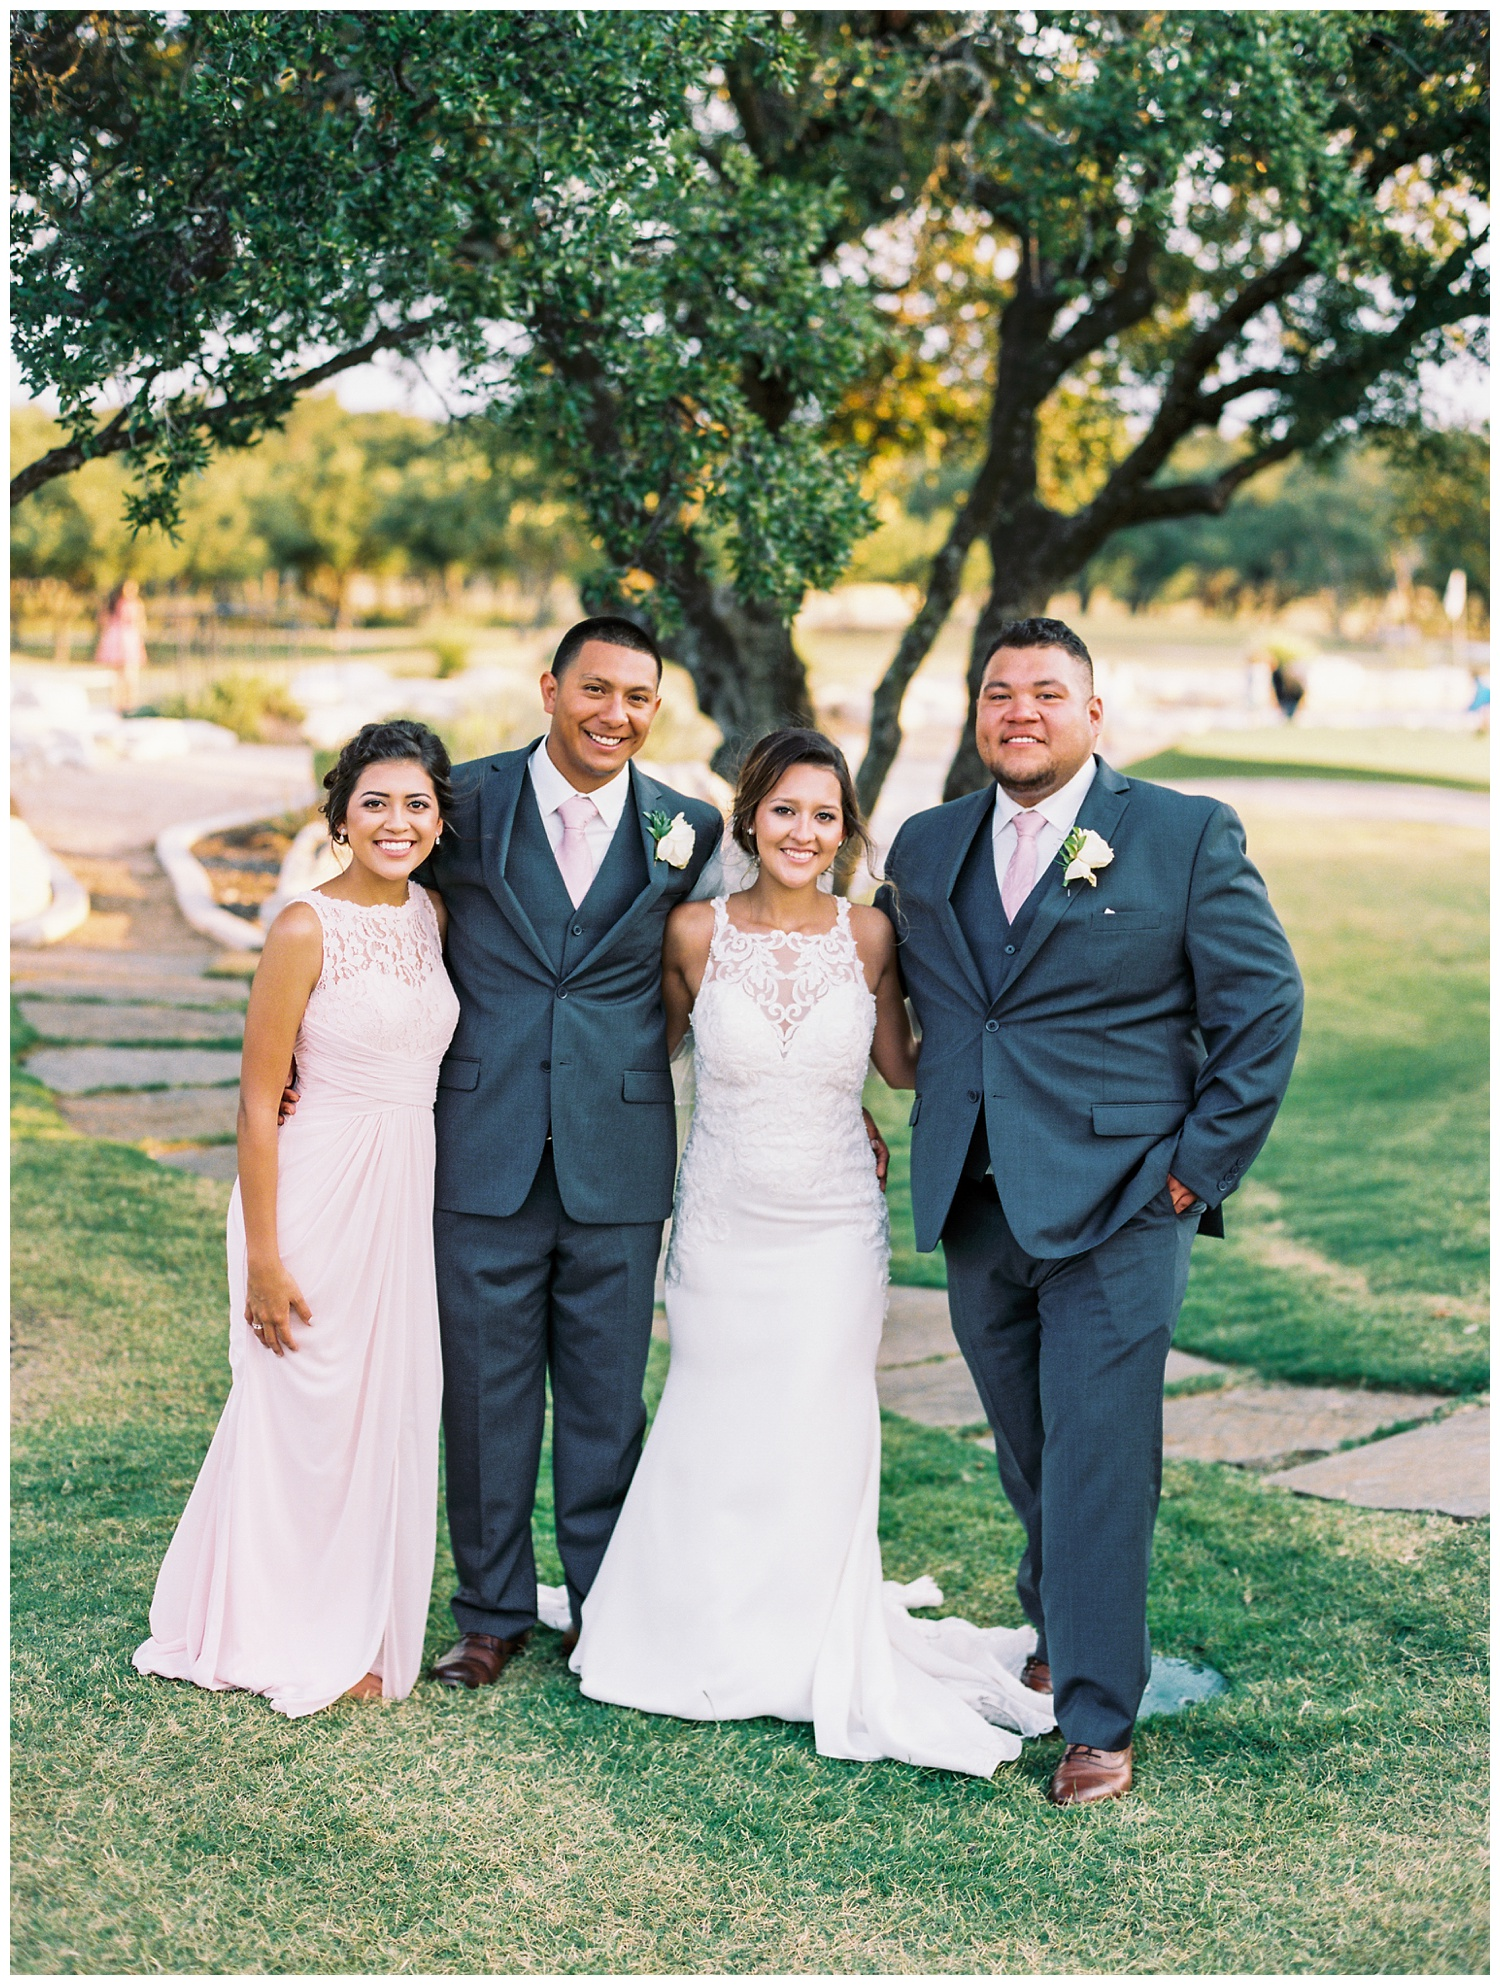 Hill Country Wedding Austin Texas Wedding Photographer_0057.jpg